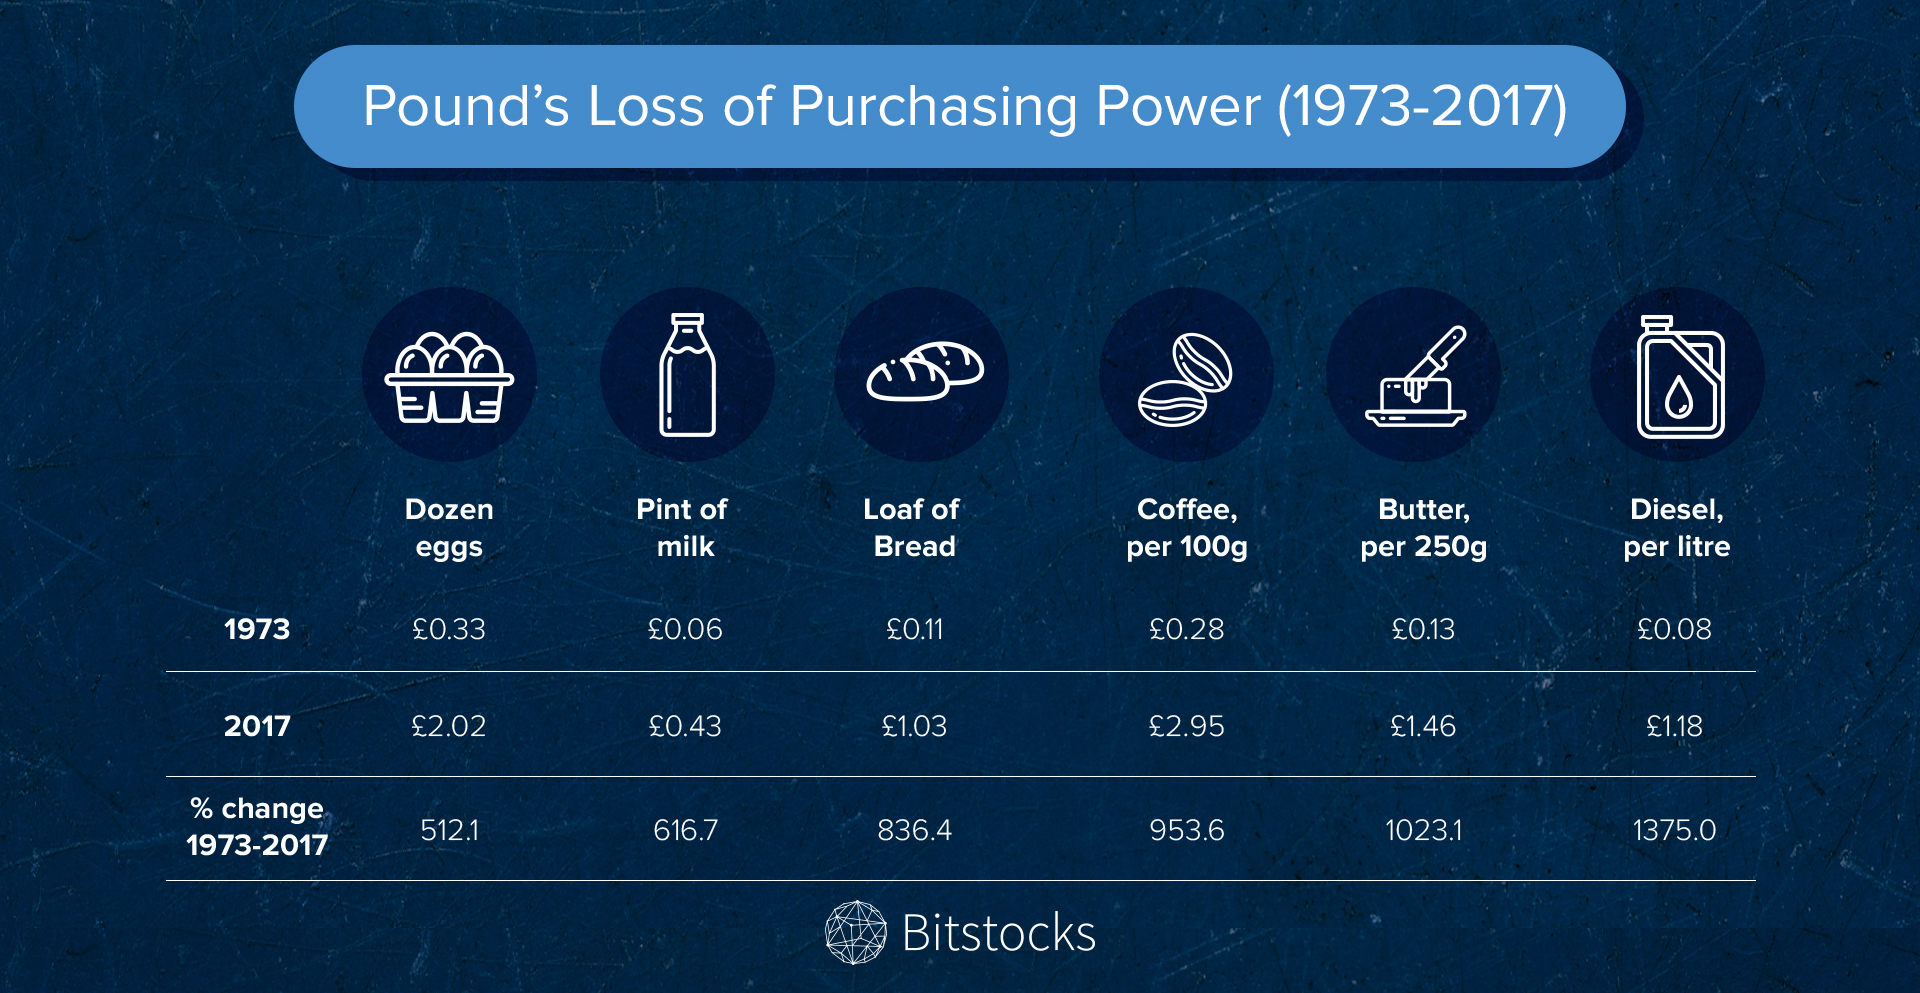 uploads-ssl.webflow.com583ff9721141e61b0ad337765c6a7271d8c227b0f249bf8d_Pound's Loss of Purchasing Power - Bitstocks Blog image